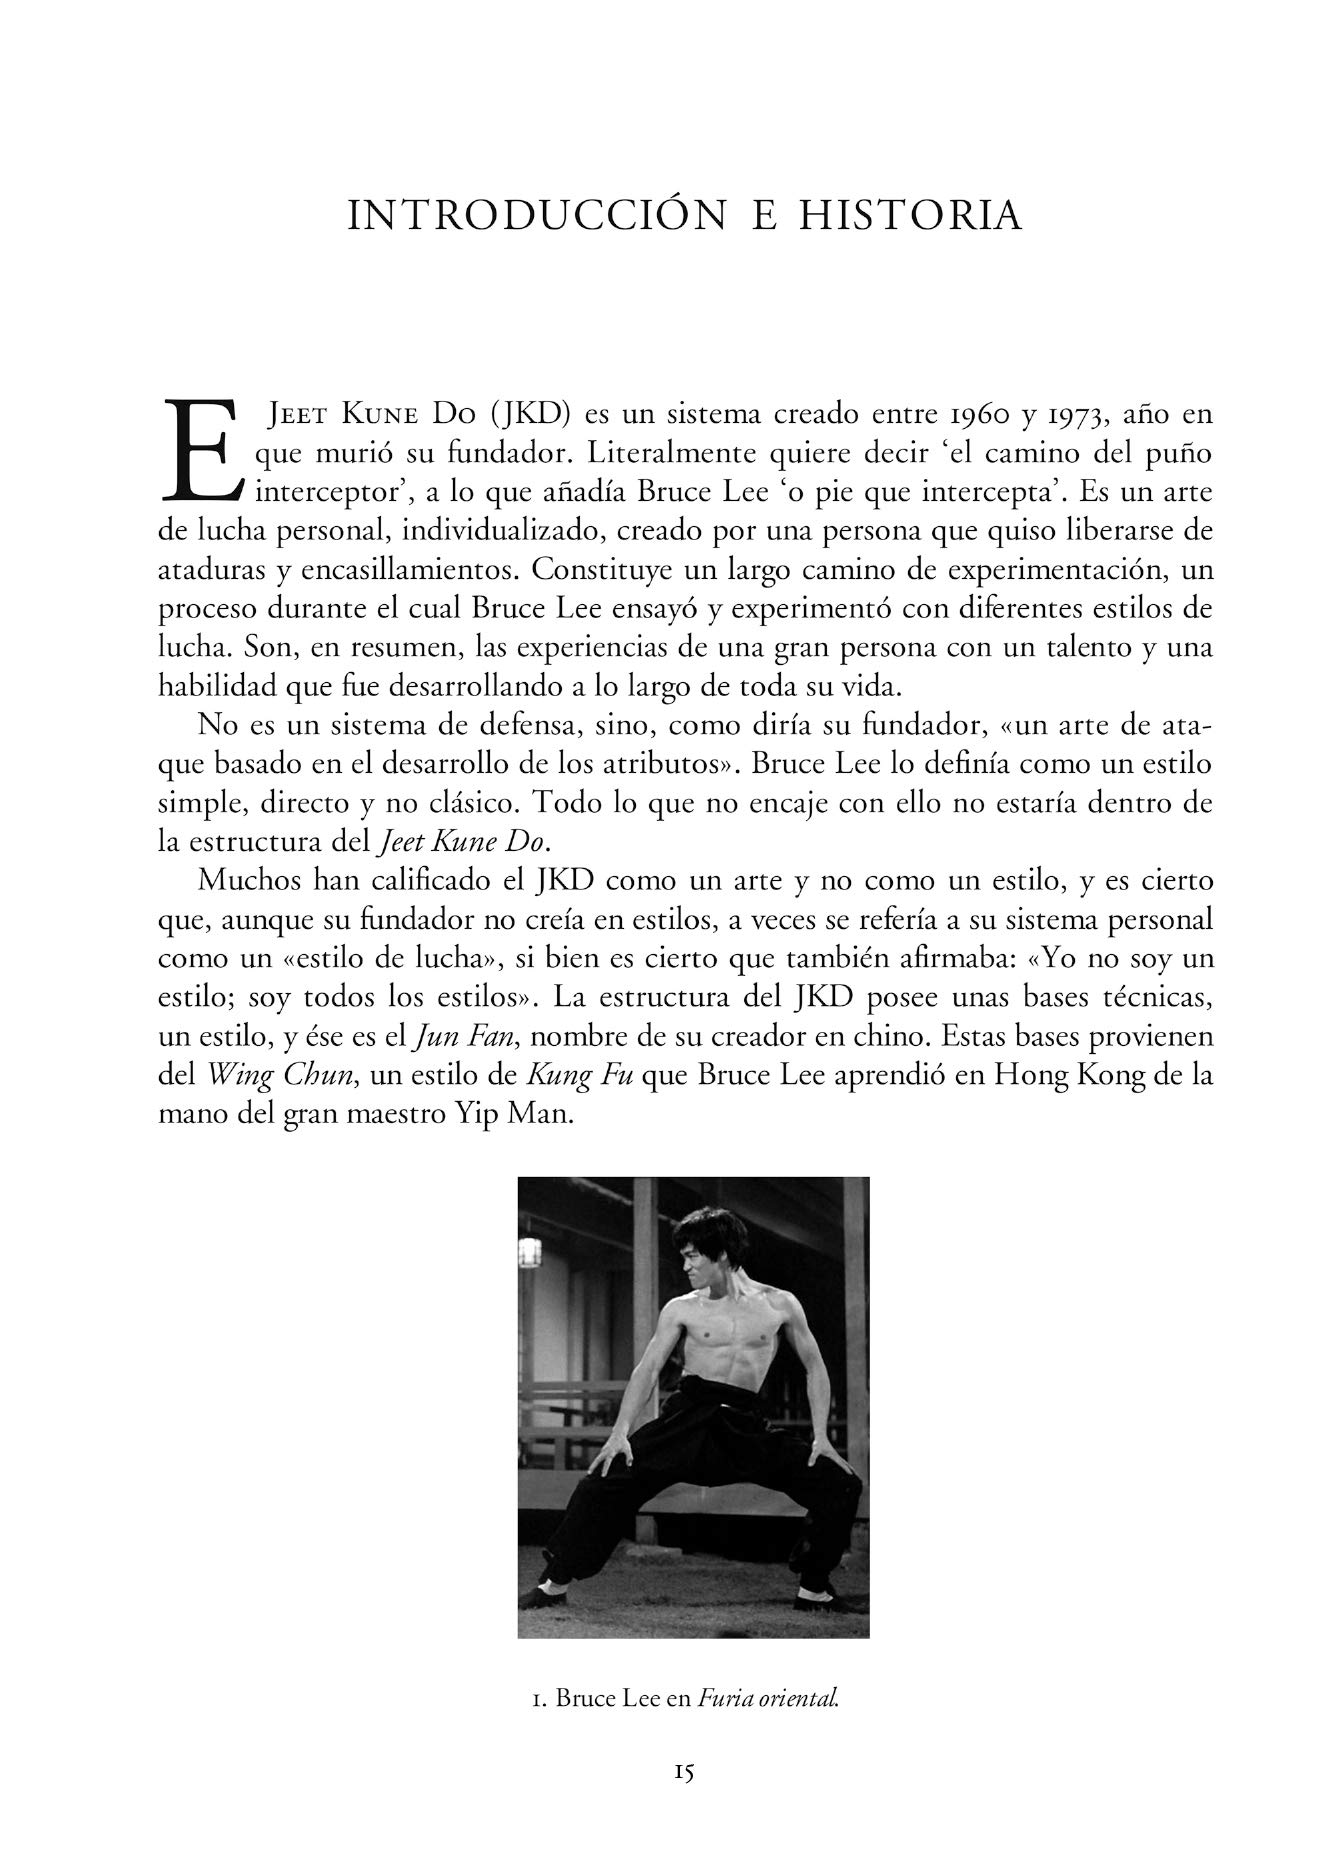 Jeet Kune Do: El Arte Ofensivo de la Defensa (Spanish Edition): Juan José Zamudio Cabeza: 9788420304335: Amazon.com: Books